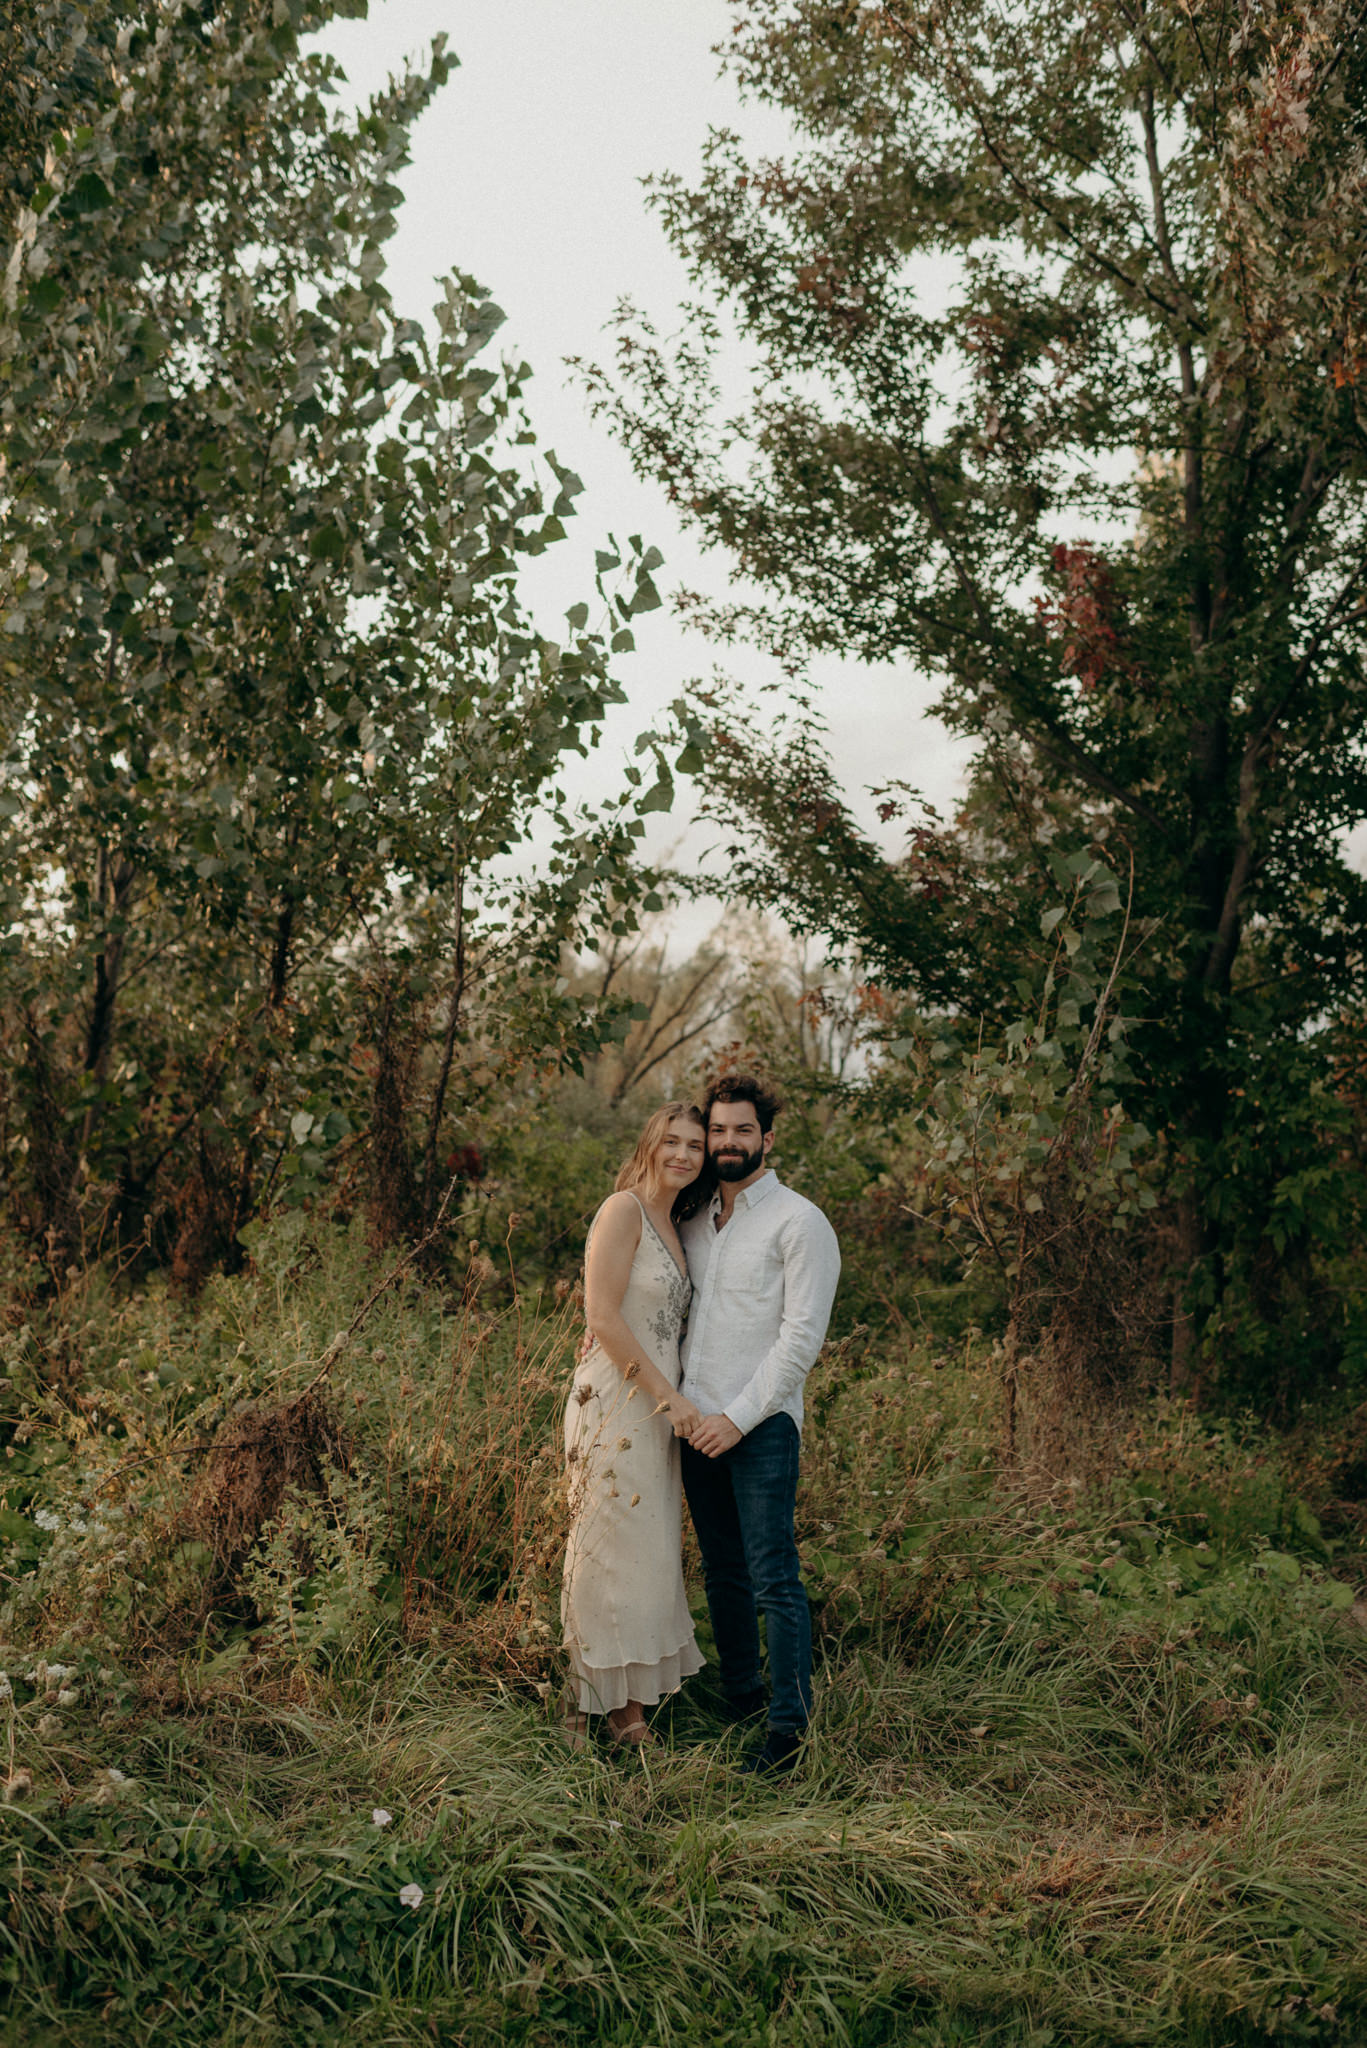 Couple smiling at camera in a field with trees